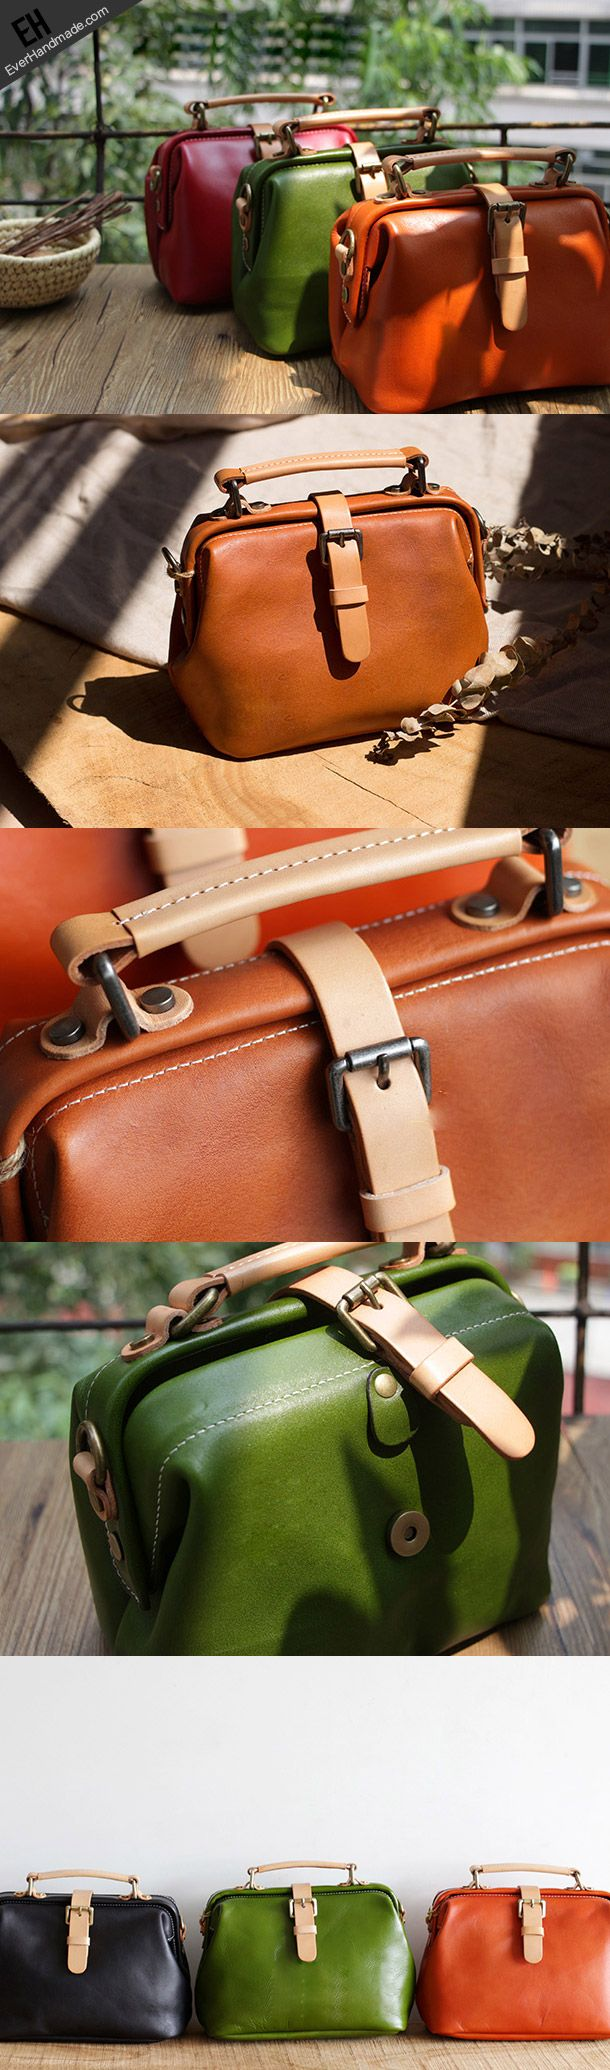 Handmade Leather doctor bag for women leather shoulder bag